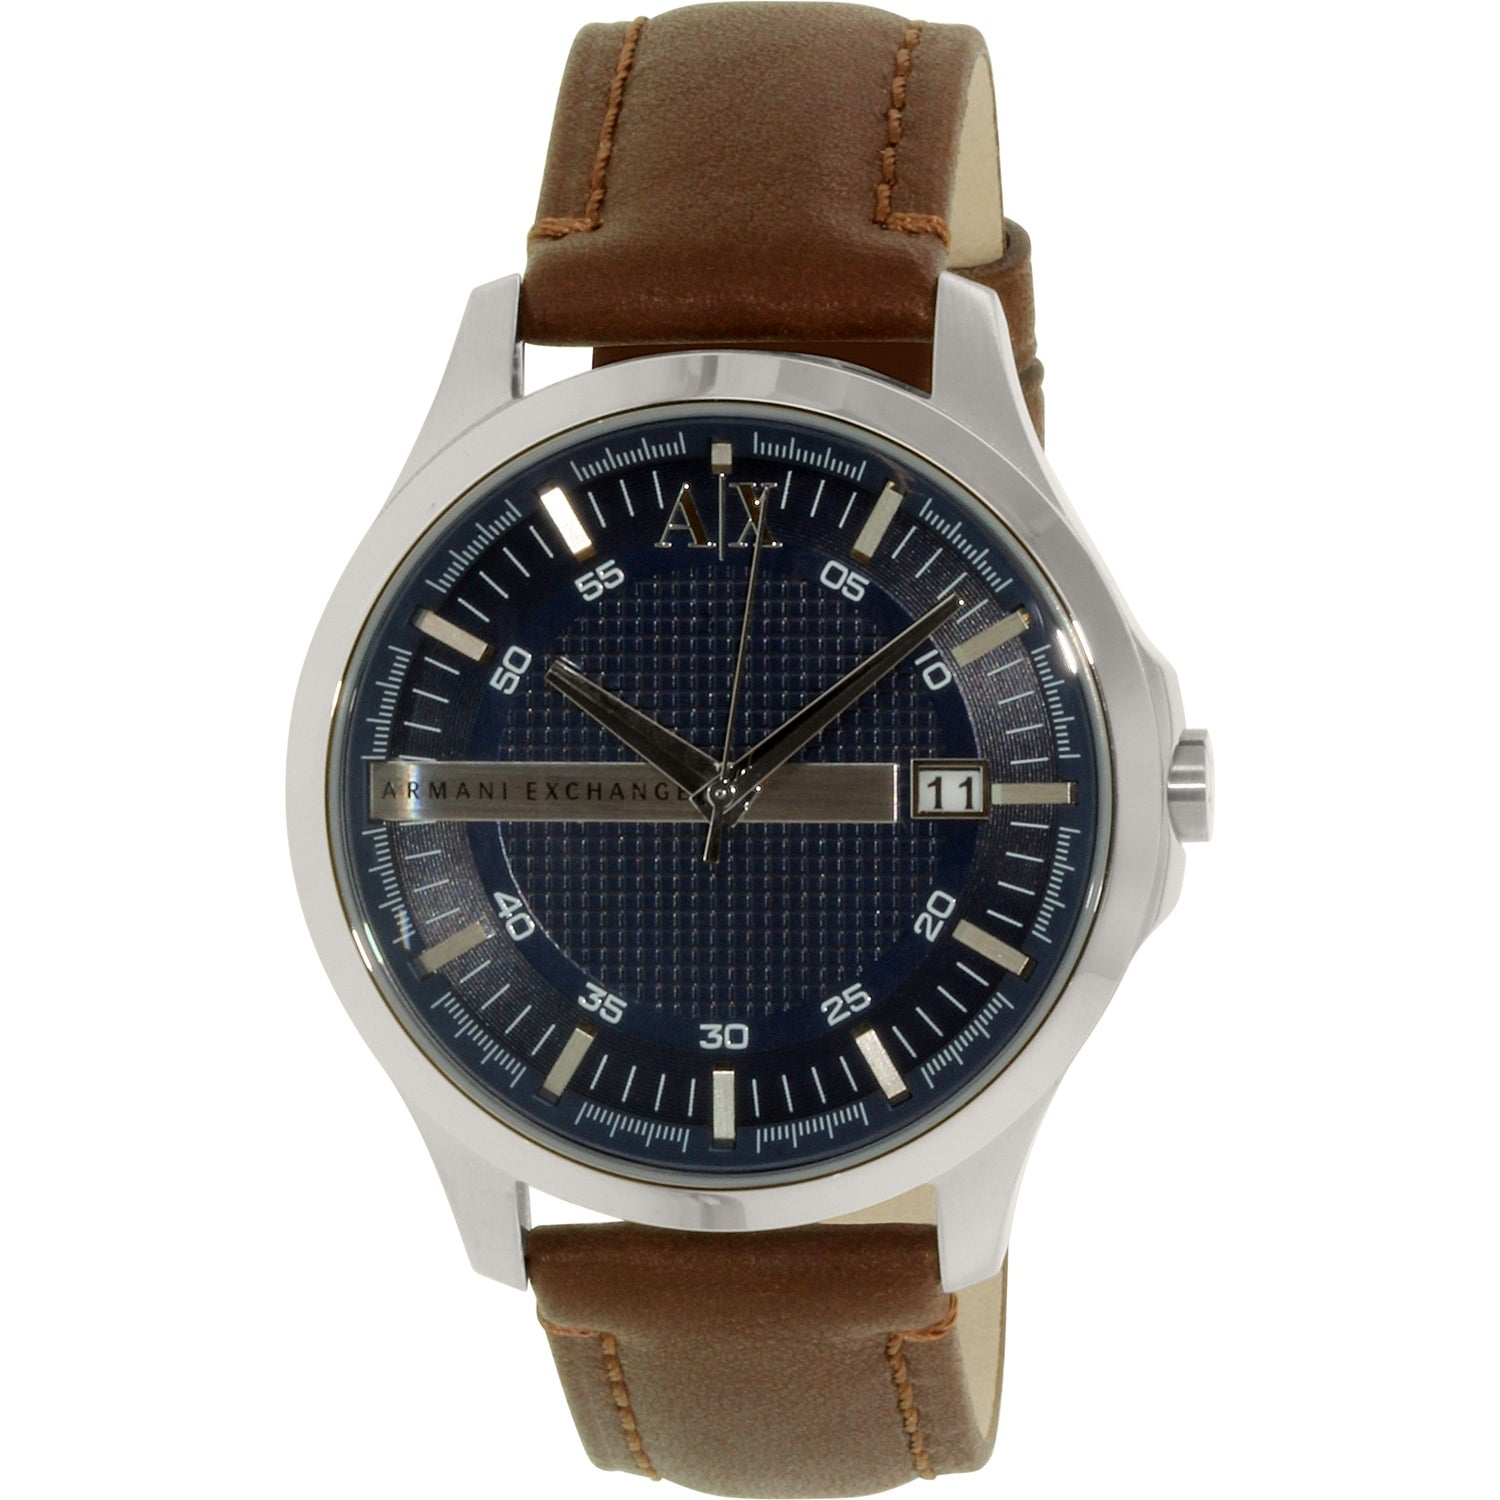 a3e911723d3 Shop Armani Exchange Men s Hampton Brown Leather Quartz Dress Watch - Free  Shipping Today - Overstock.com - 18617076